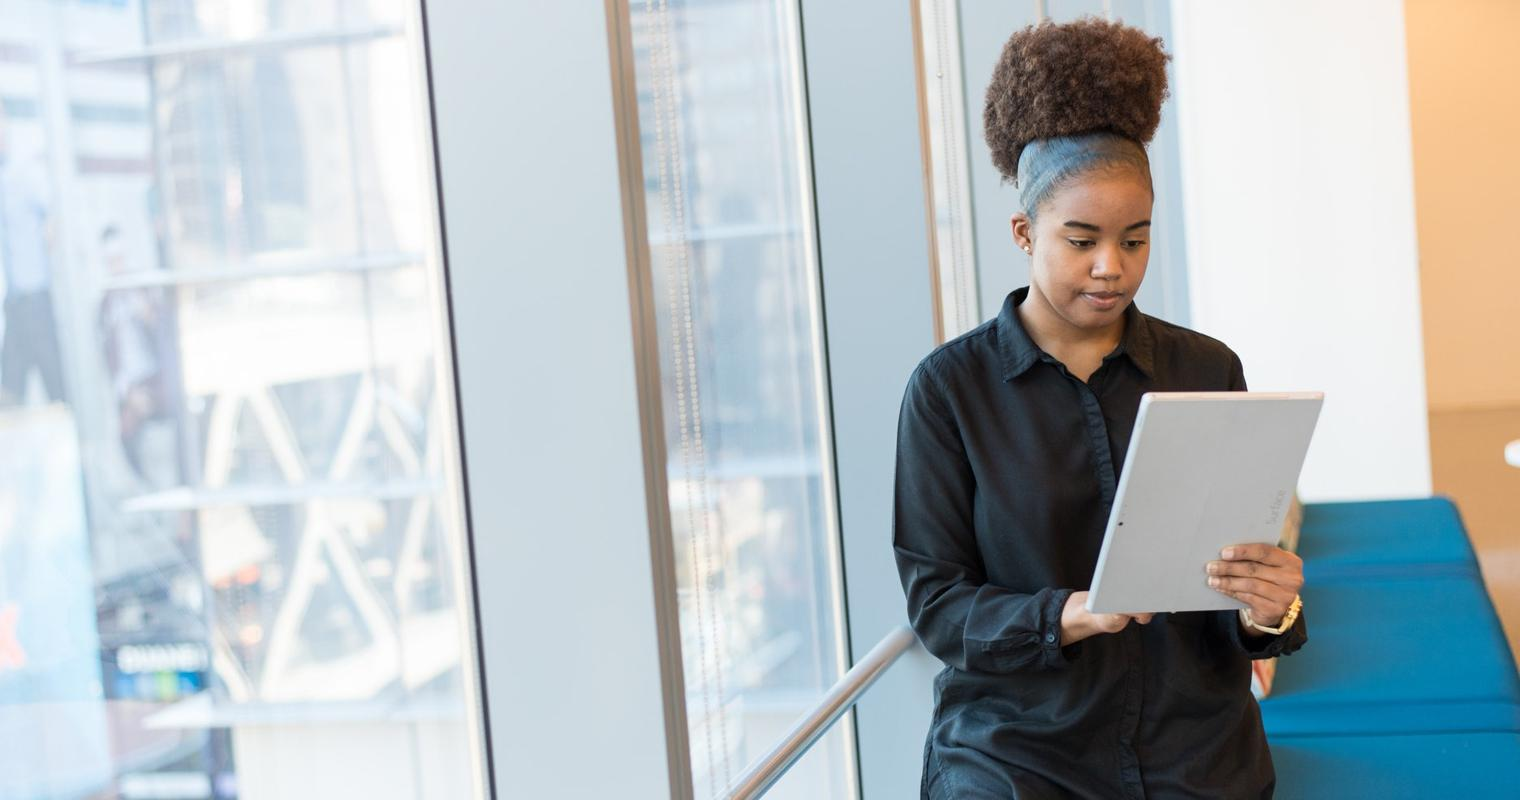 4 Tips for Recruiting at Historically Black Colleges and Universities (HBCUs)